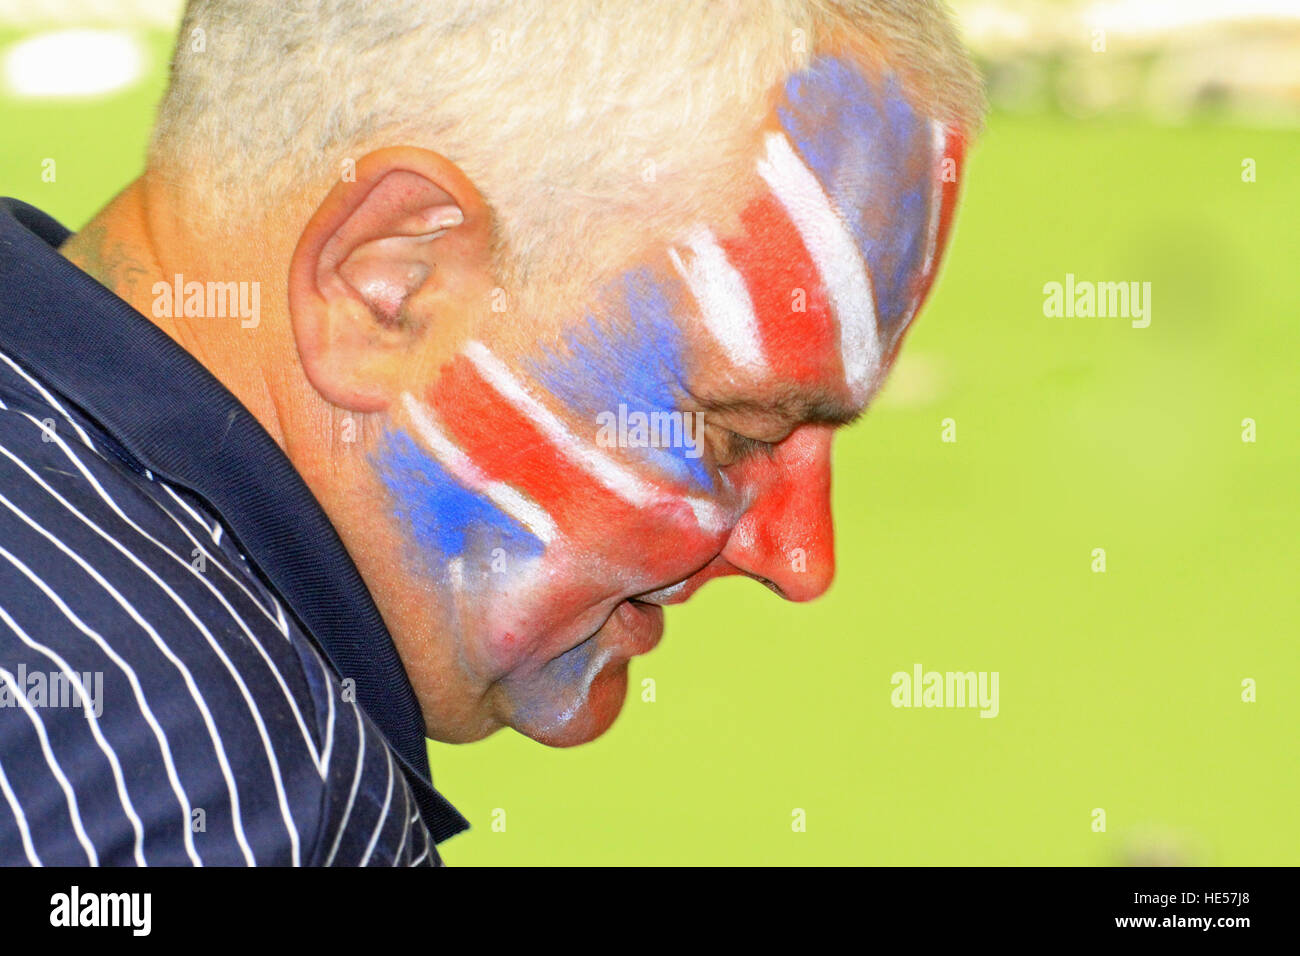 Middle aged man wearing union jack face paint during the Warsaw speedway grand prix in Poland - Stock Image